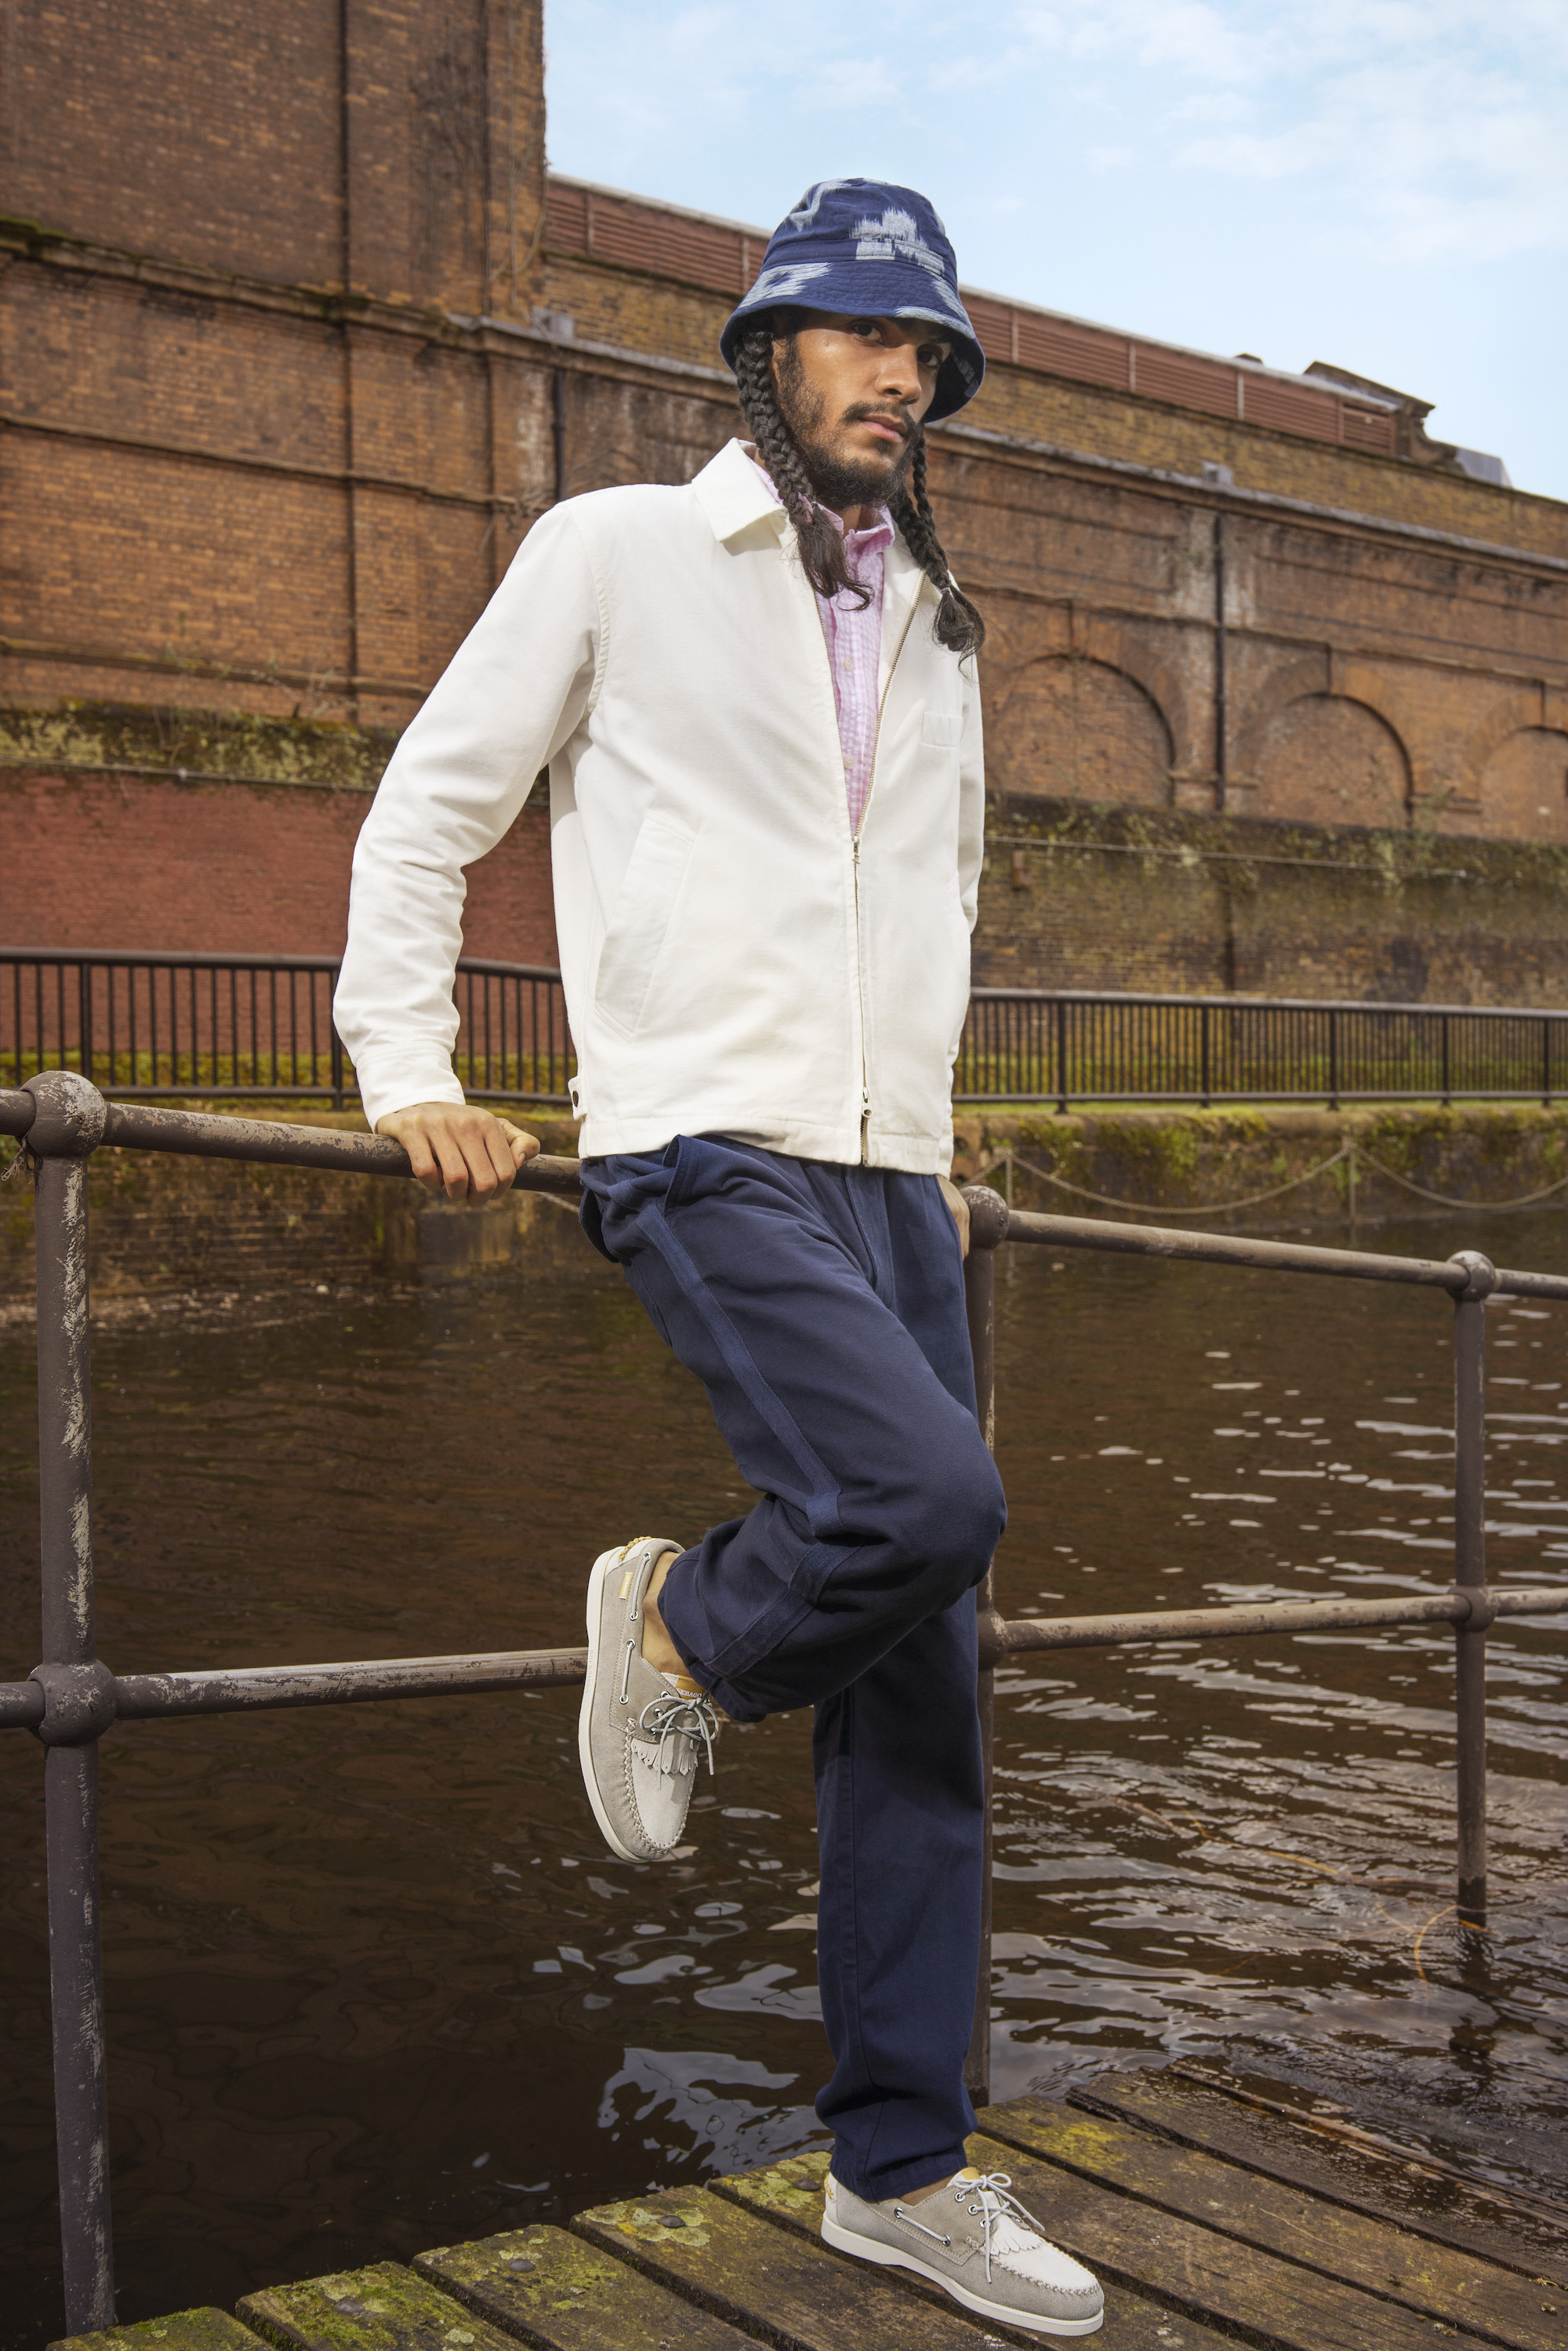 Universal x sabago collaboration for SS20 white jacket and grey two tone portland boat shoes